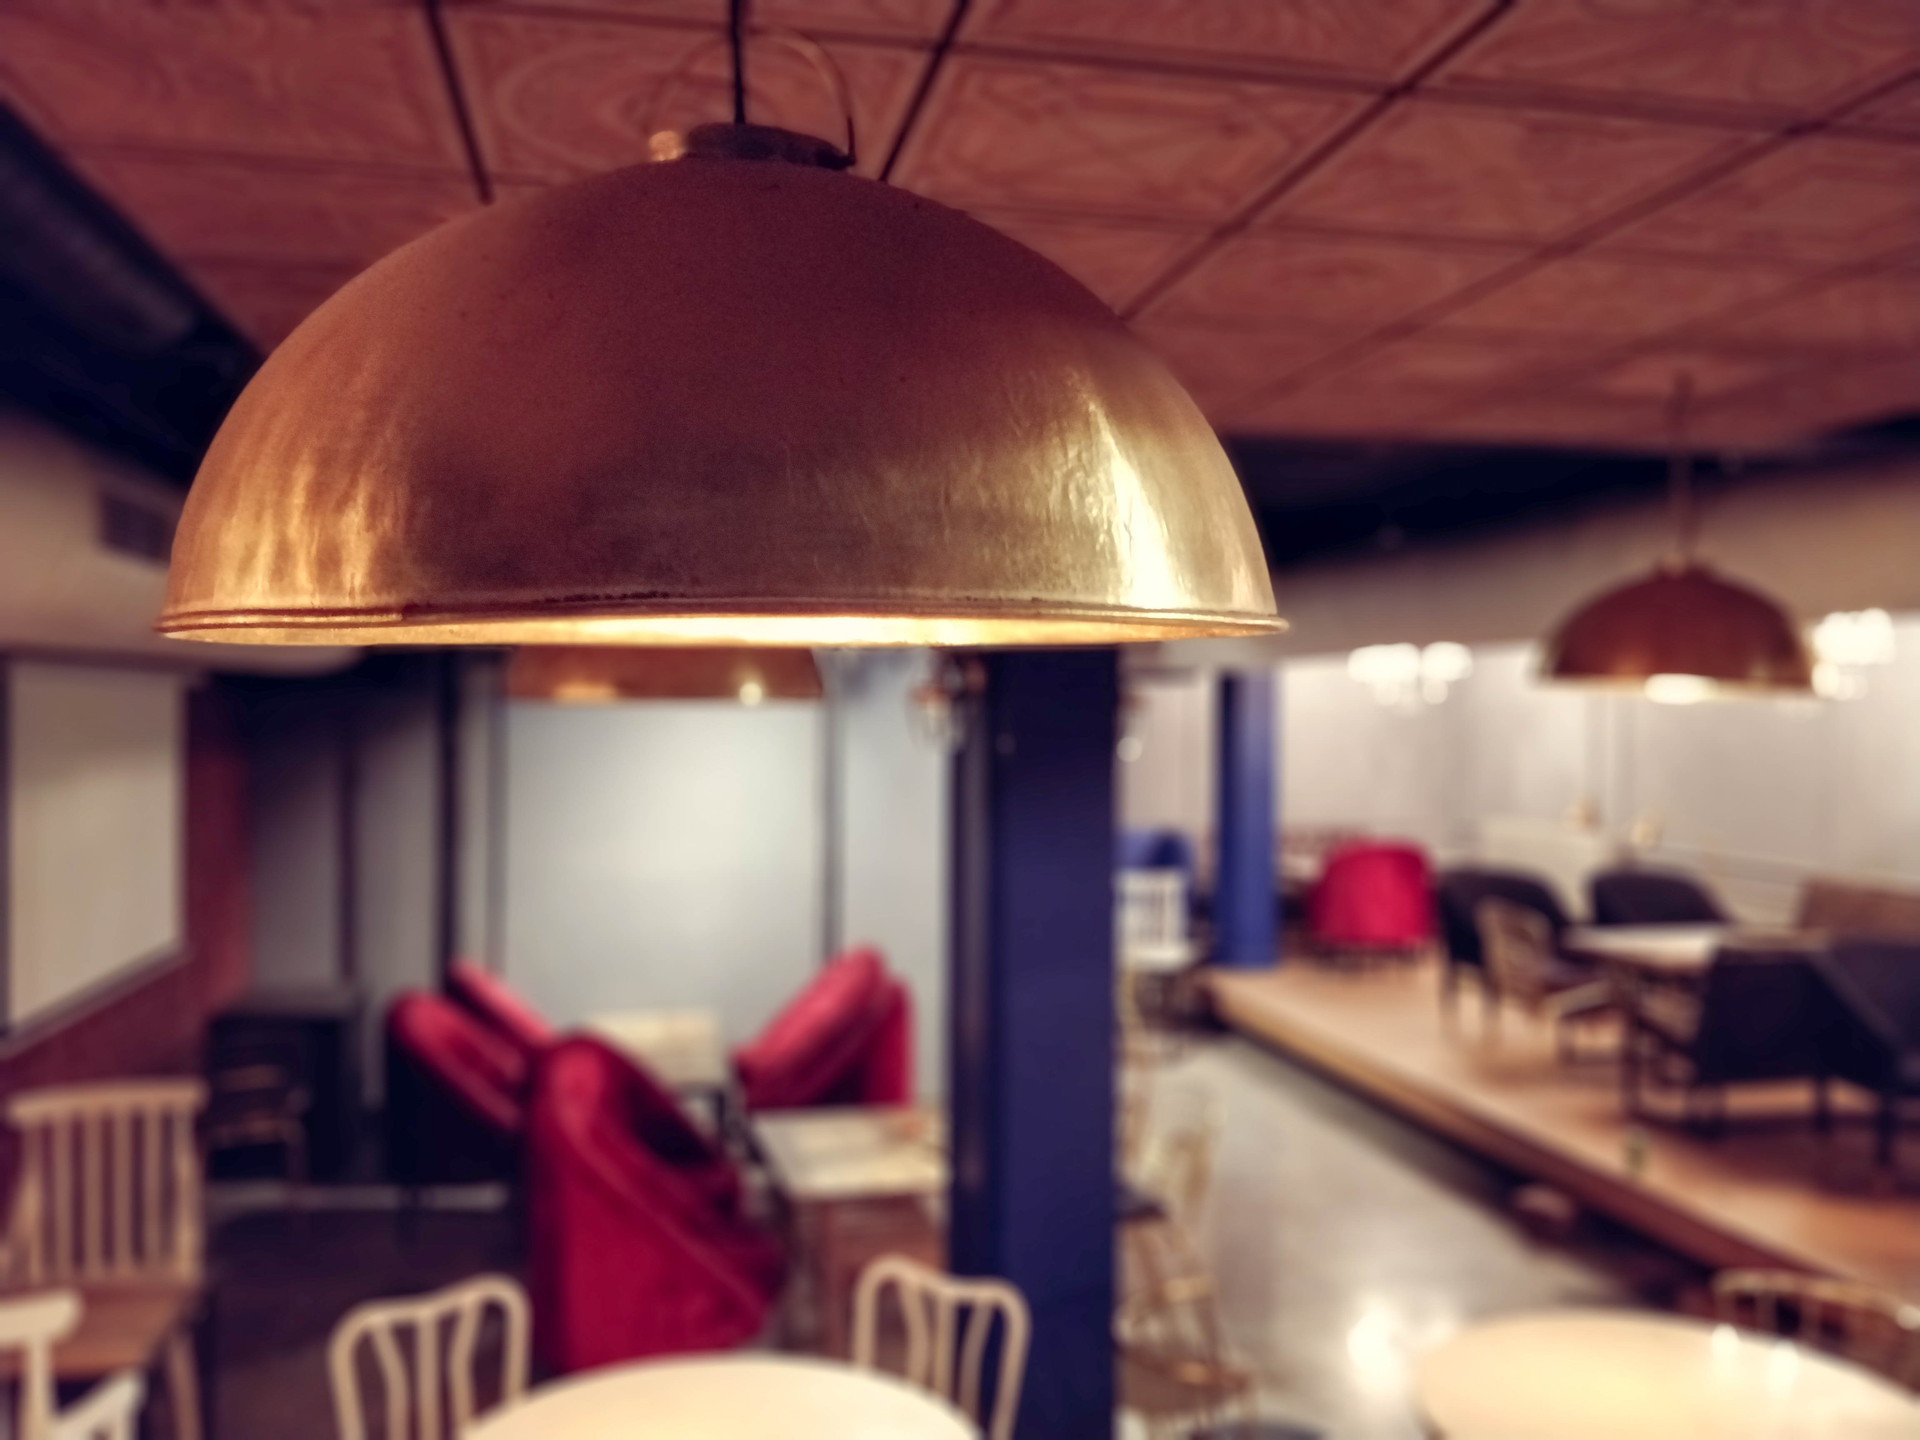 Customized brass light fixture